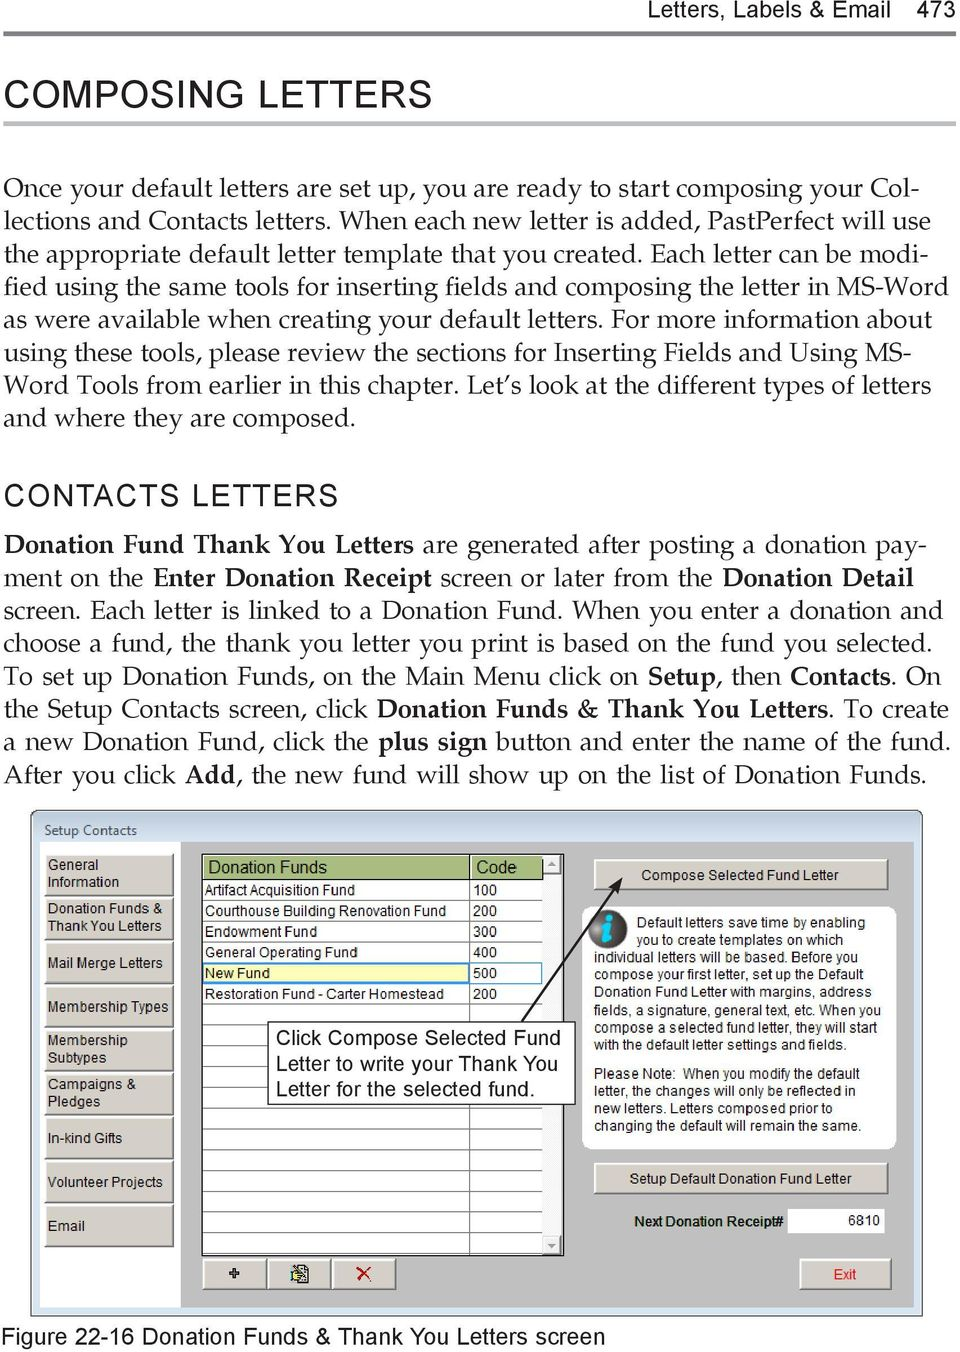 Each letter can be modified using the same tools for inserting fields and composing the letter in MS-Word as were available when creating your default letters.